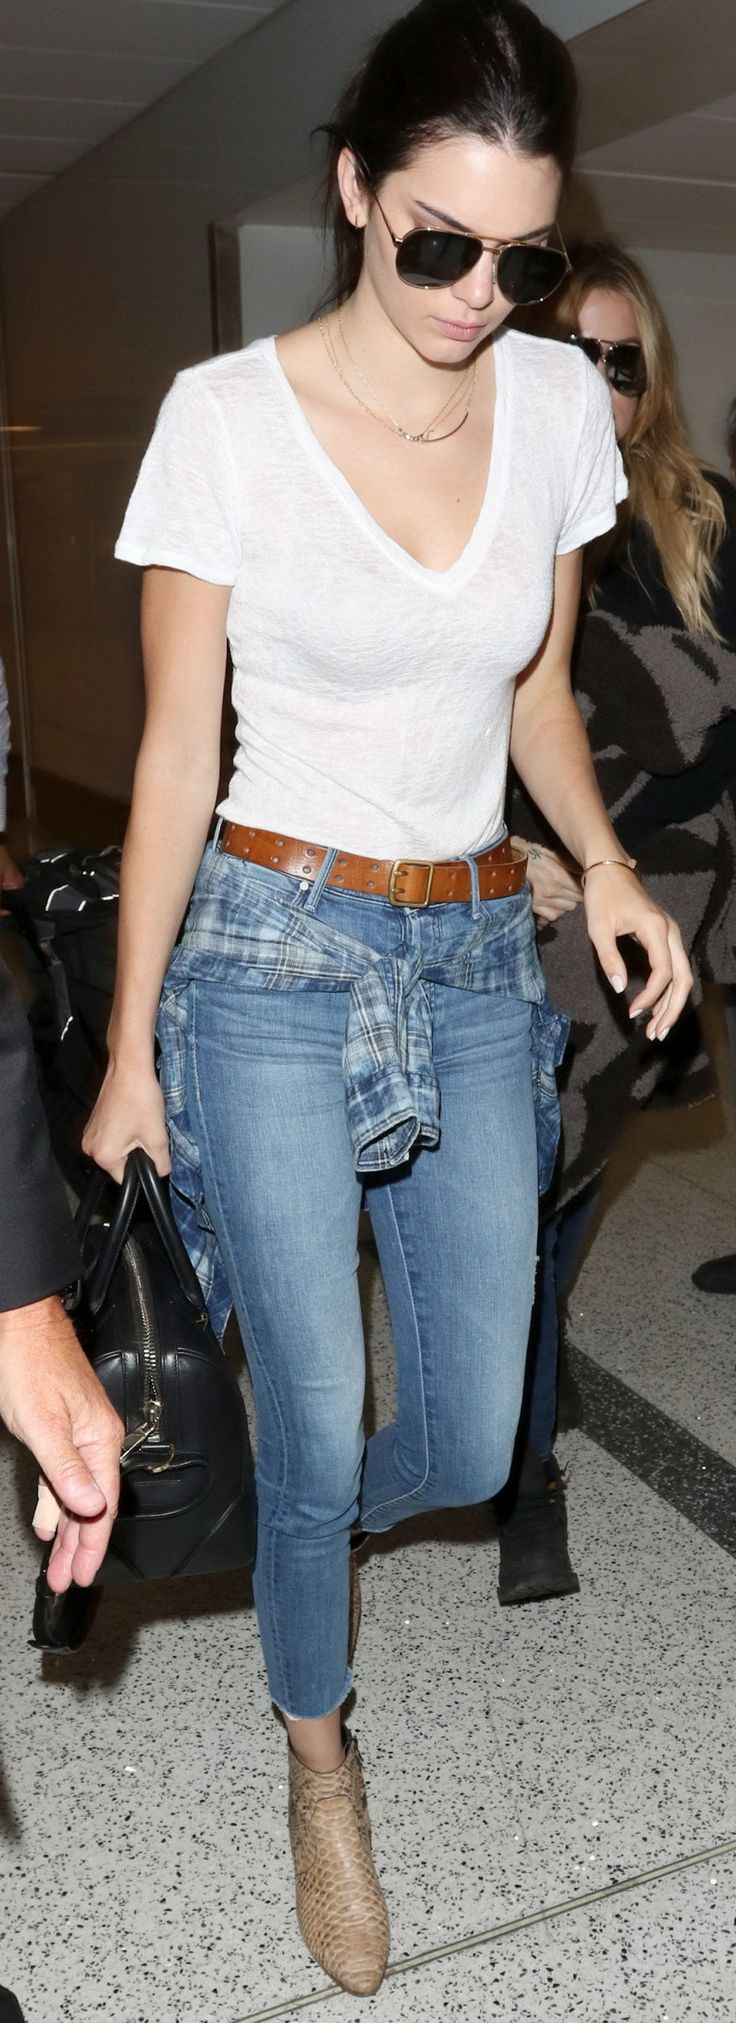 Kendall Jenner in Black Orchid button down, cropped jeans, and ankle booties.